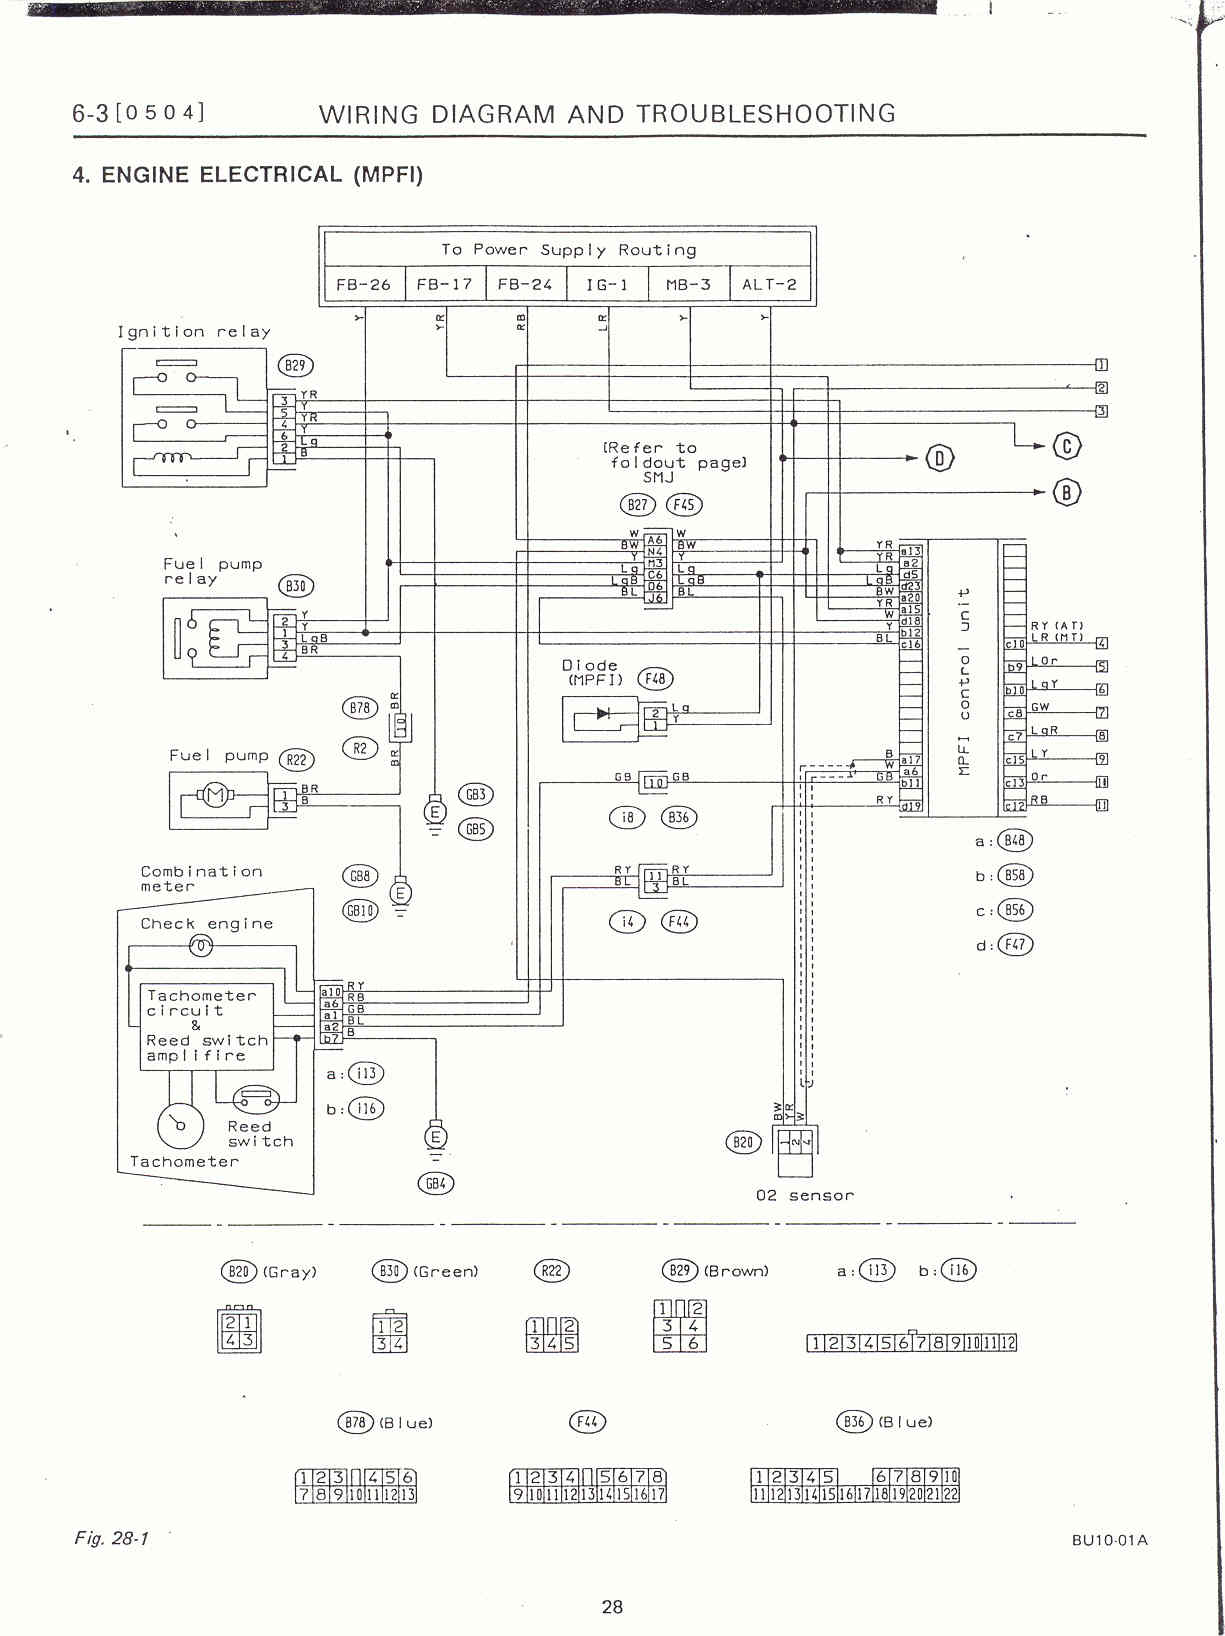 2013 wrx wiring diagram